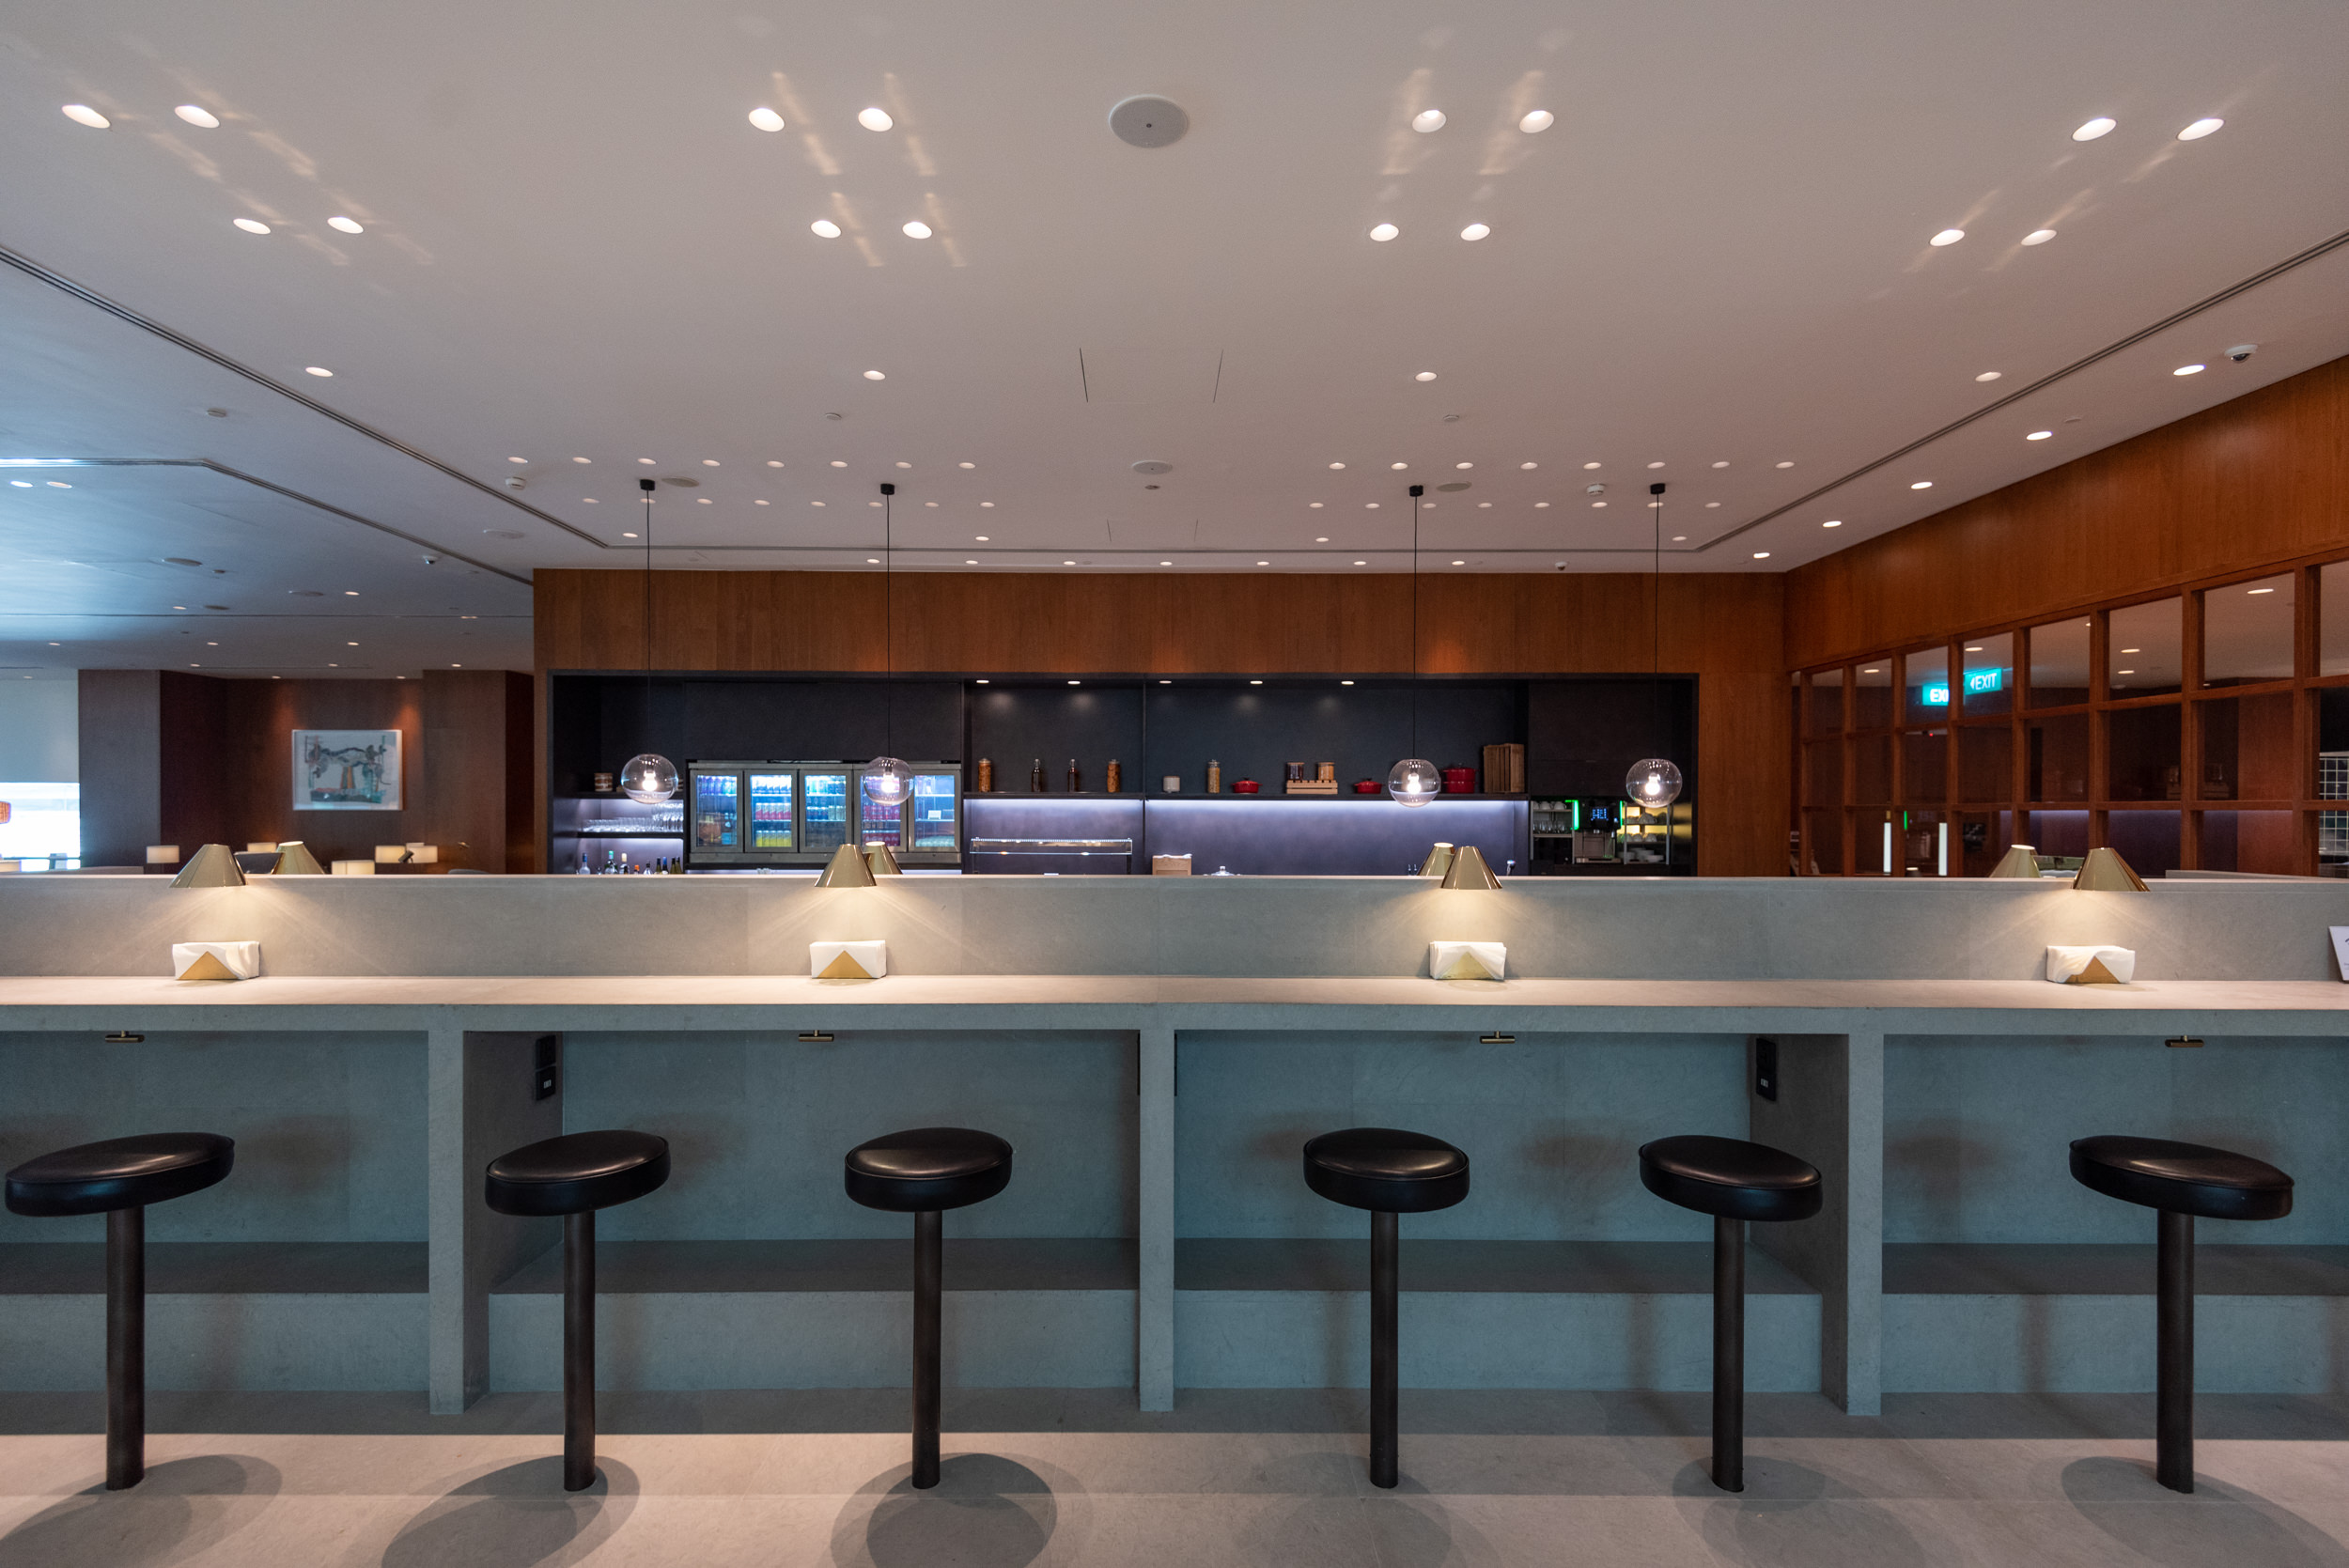 Seating Area with Bar Stools  Cathay Pacific Lounge (Terminal 4) - Singapore Changi Airport (SIN)